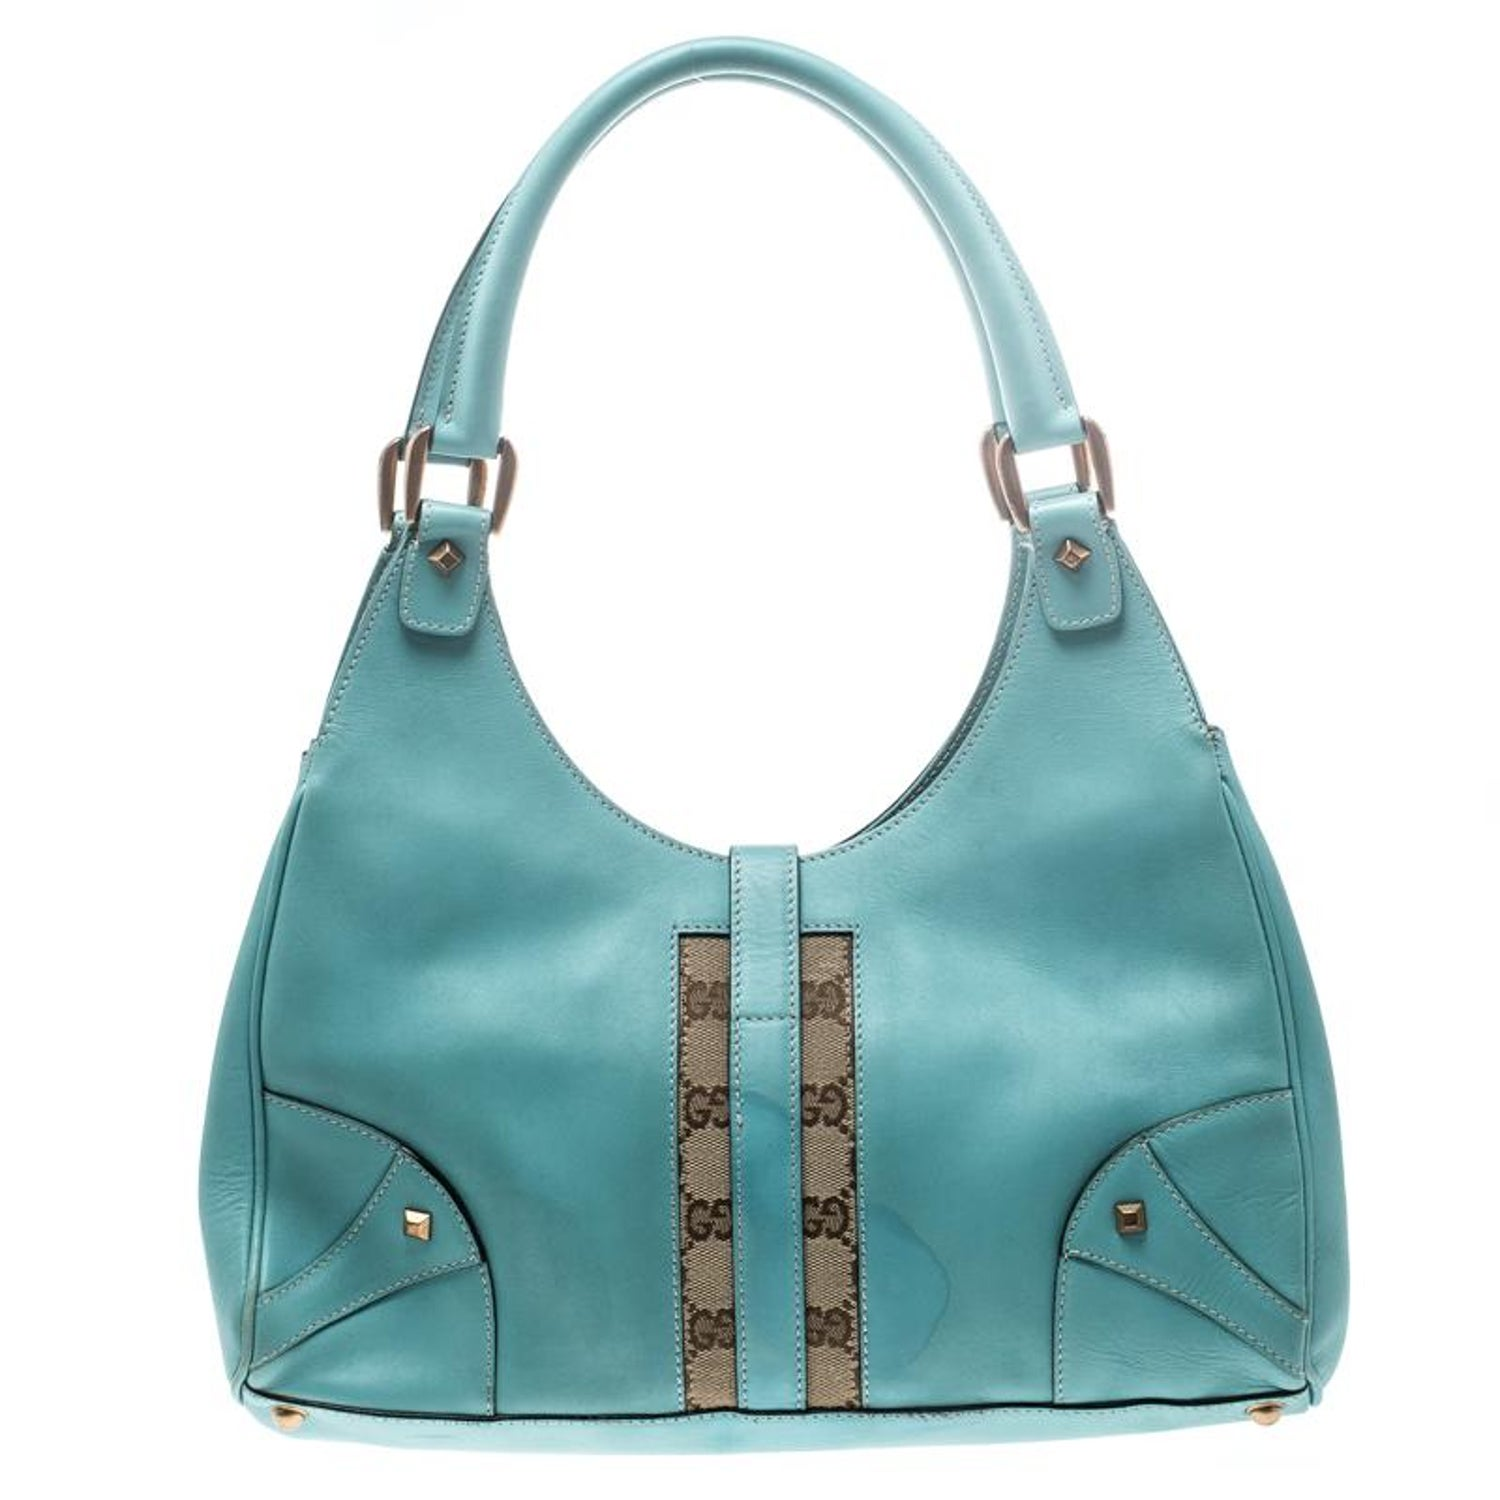 9099c8776 Gucci Turquoise Leather and GG Canvas Jackie O Hobo For Sale at 1stdibs